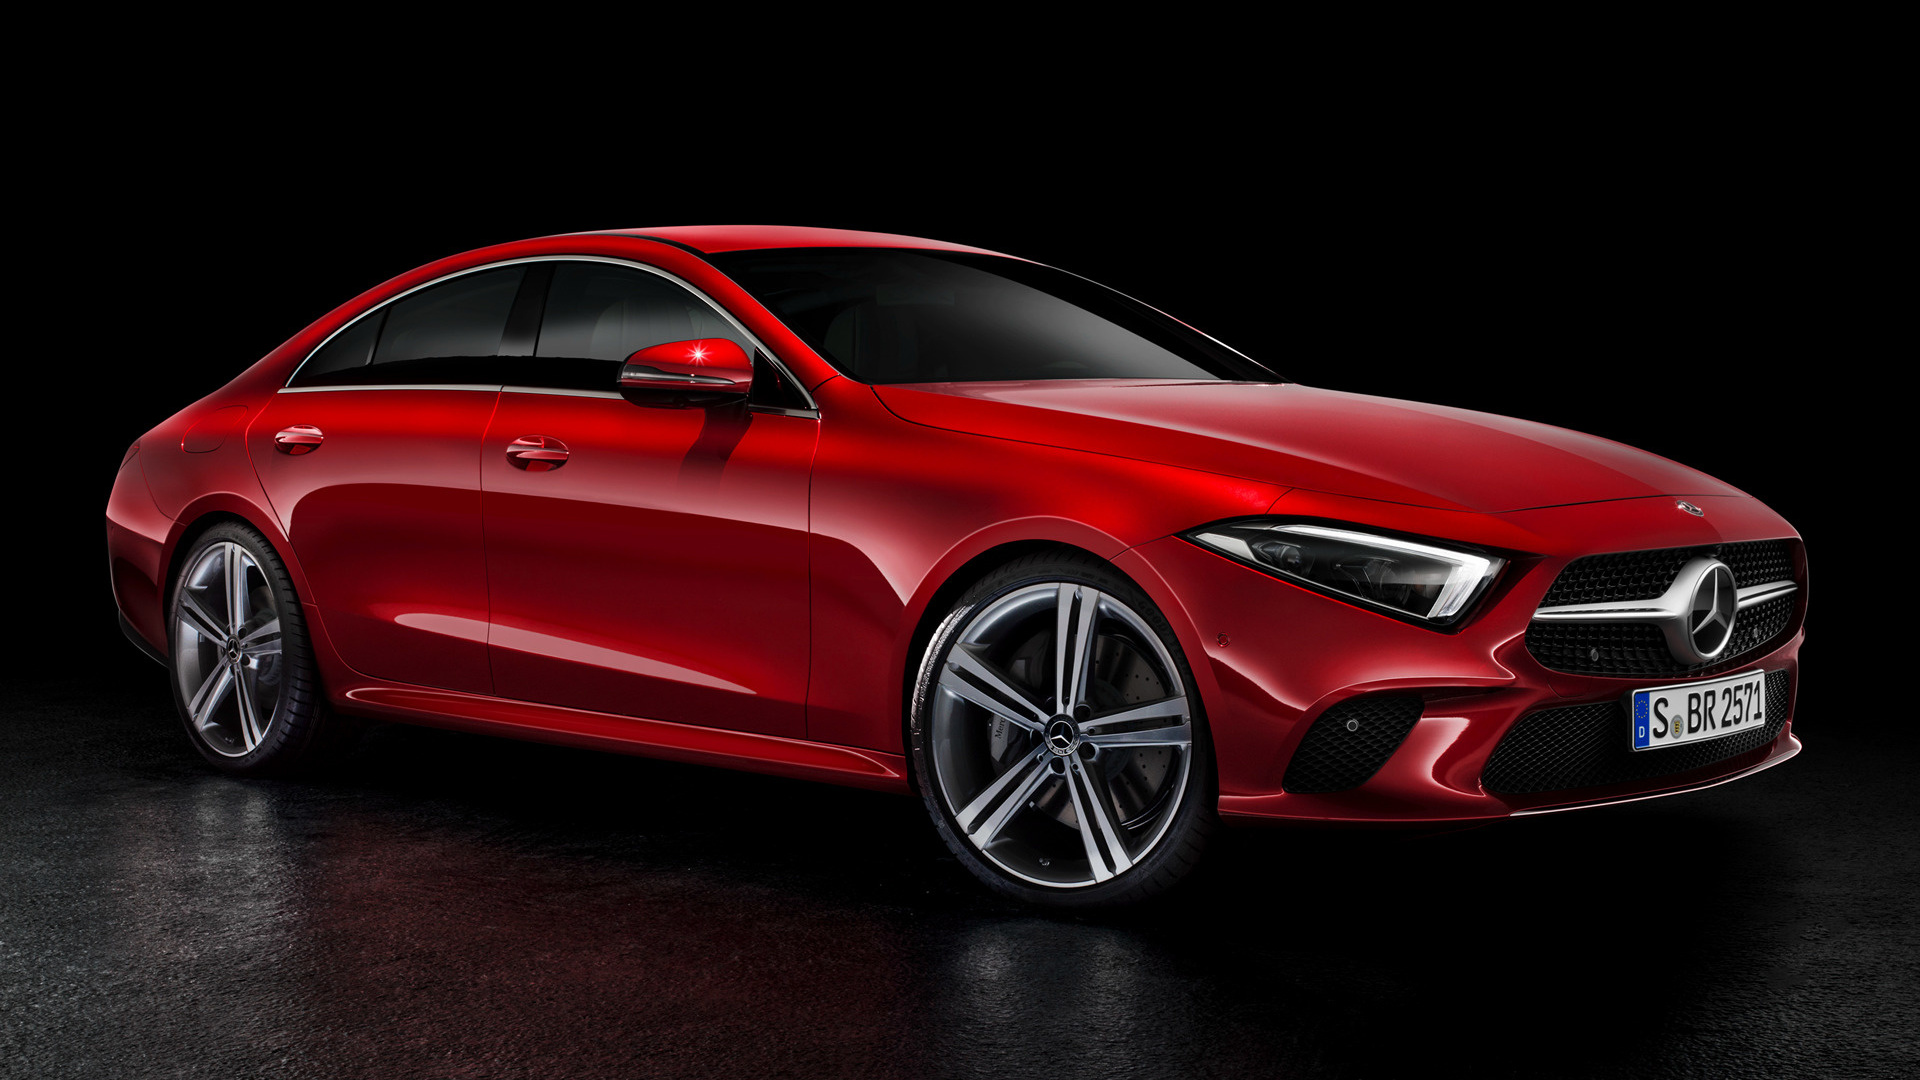 Mercedes Benz Cls Class 2018 Wallpapers And Hd Images